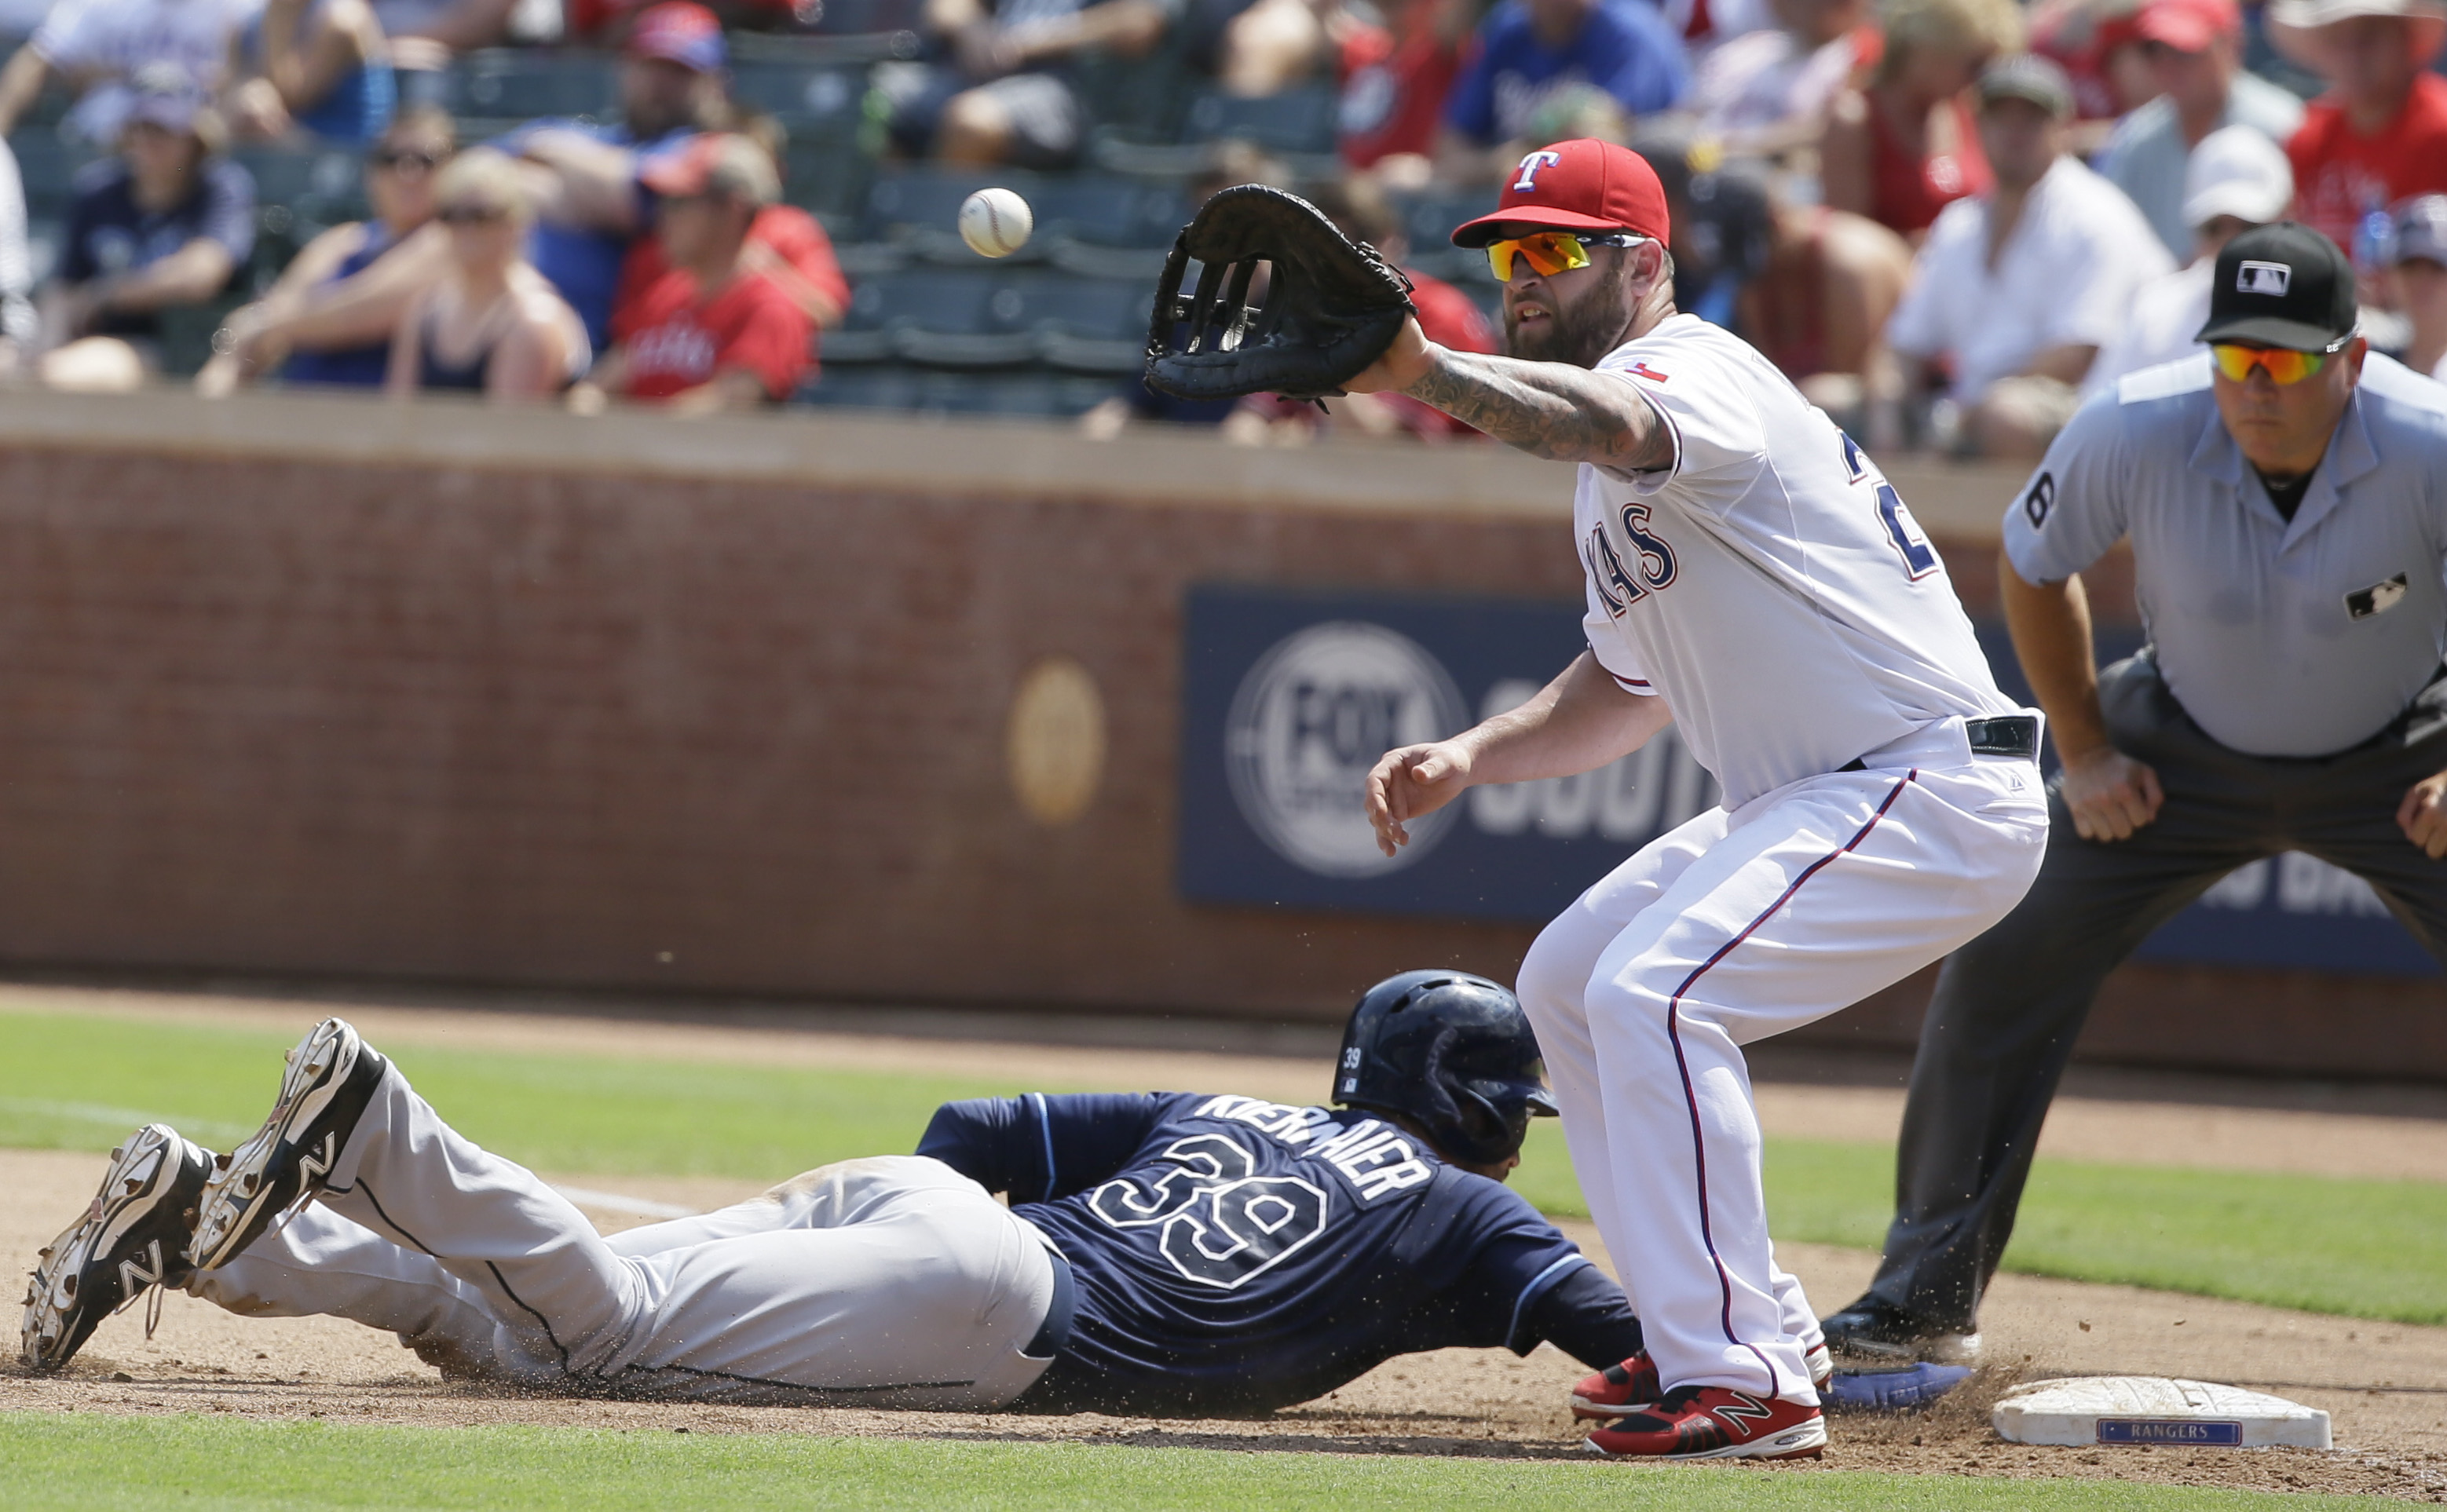 Tampa Bay Rays Kevin Kiermaier dives back to base as Texas Rangers first baseman Mike Napoli (25) waits for the pick-off throw during the fourth inning of a baseball game in Arlington, Texas, Sunday, Aug. 16, 2015. (AP Photo/LM Otero)